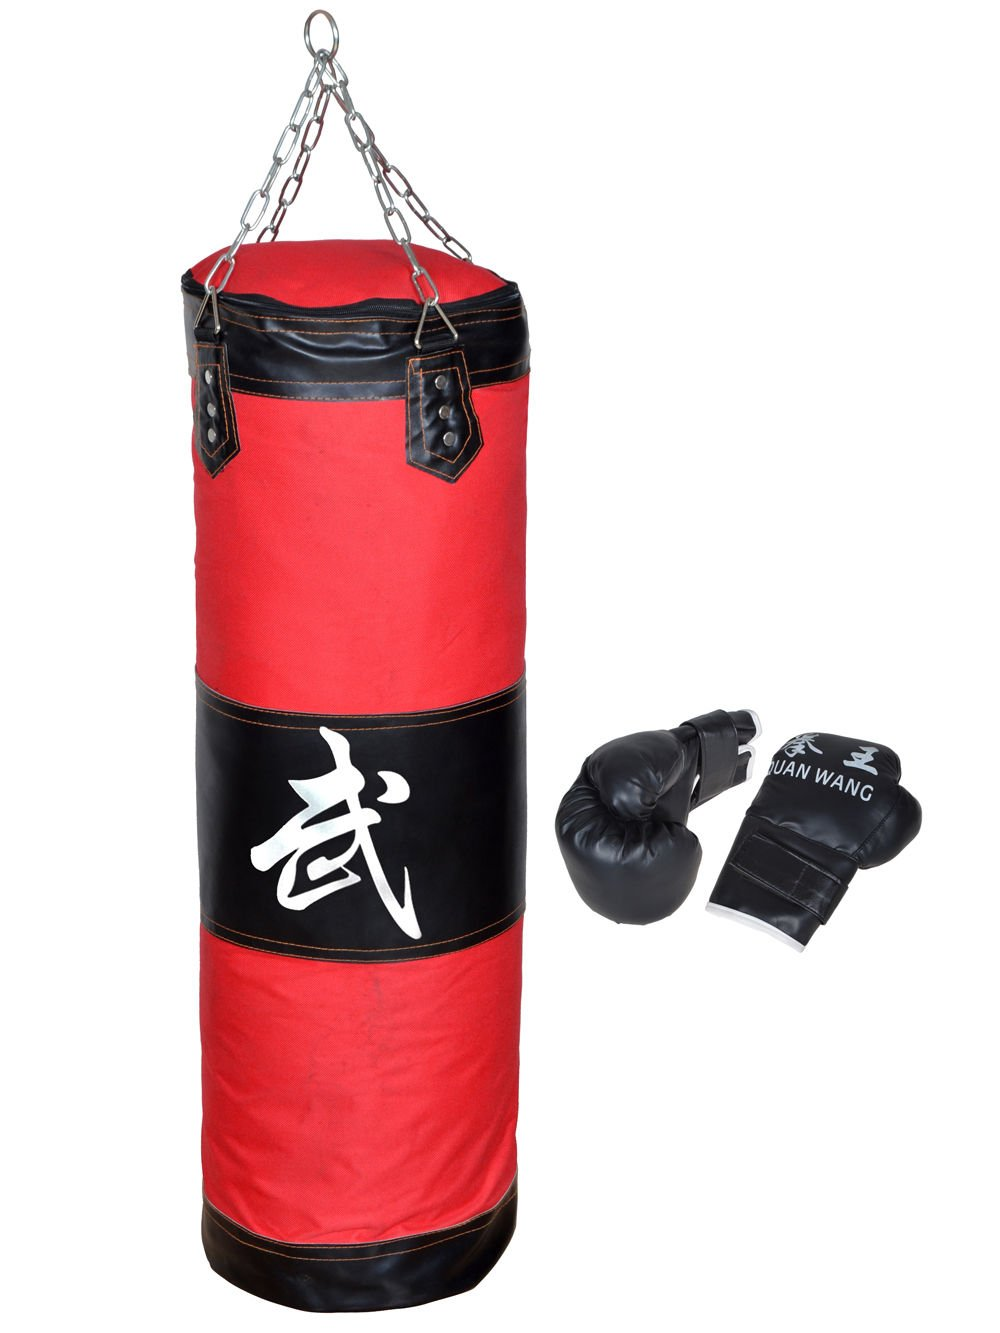 W-ShiG 39 Heavy Bags and Boxing Gloves, MMA Boxing Heavy Punching Training Bag with Chain(Empty) + Boxing Gloves Set Kit Taekwondo Training Fitness Heavy Boxing Sand Bag Workout Muay Thai Kick Bag